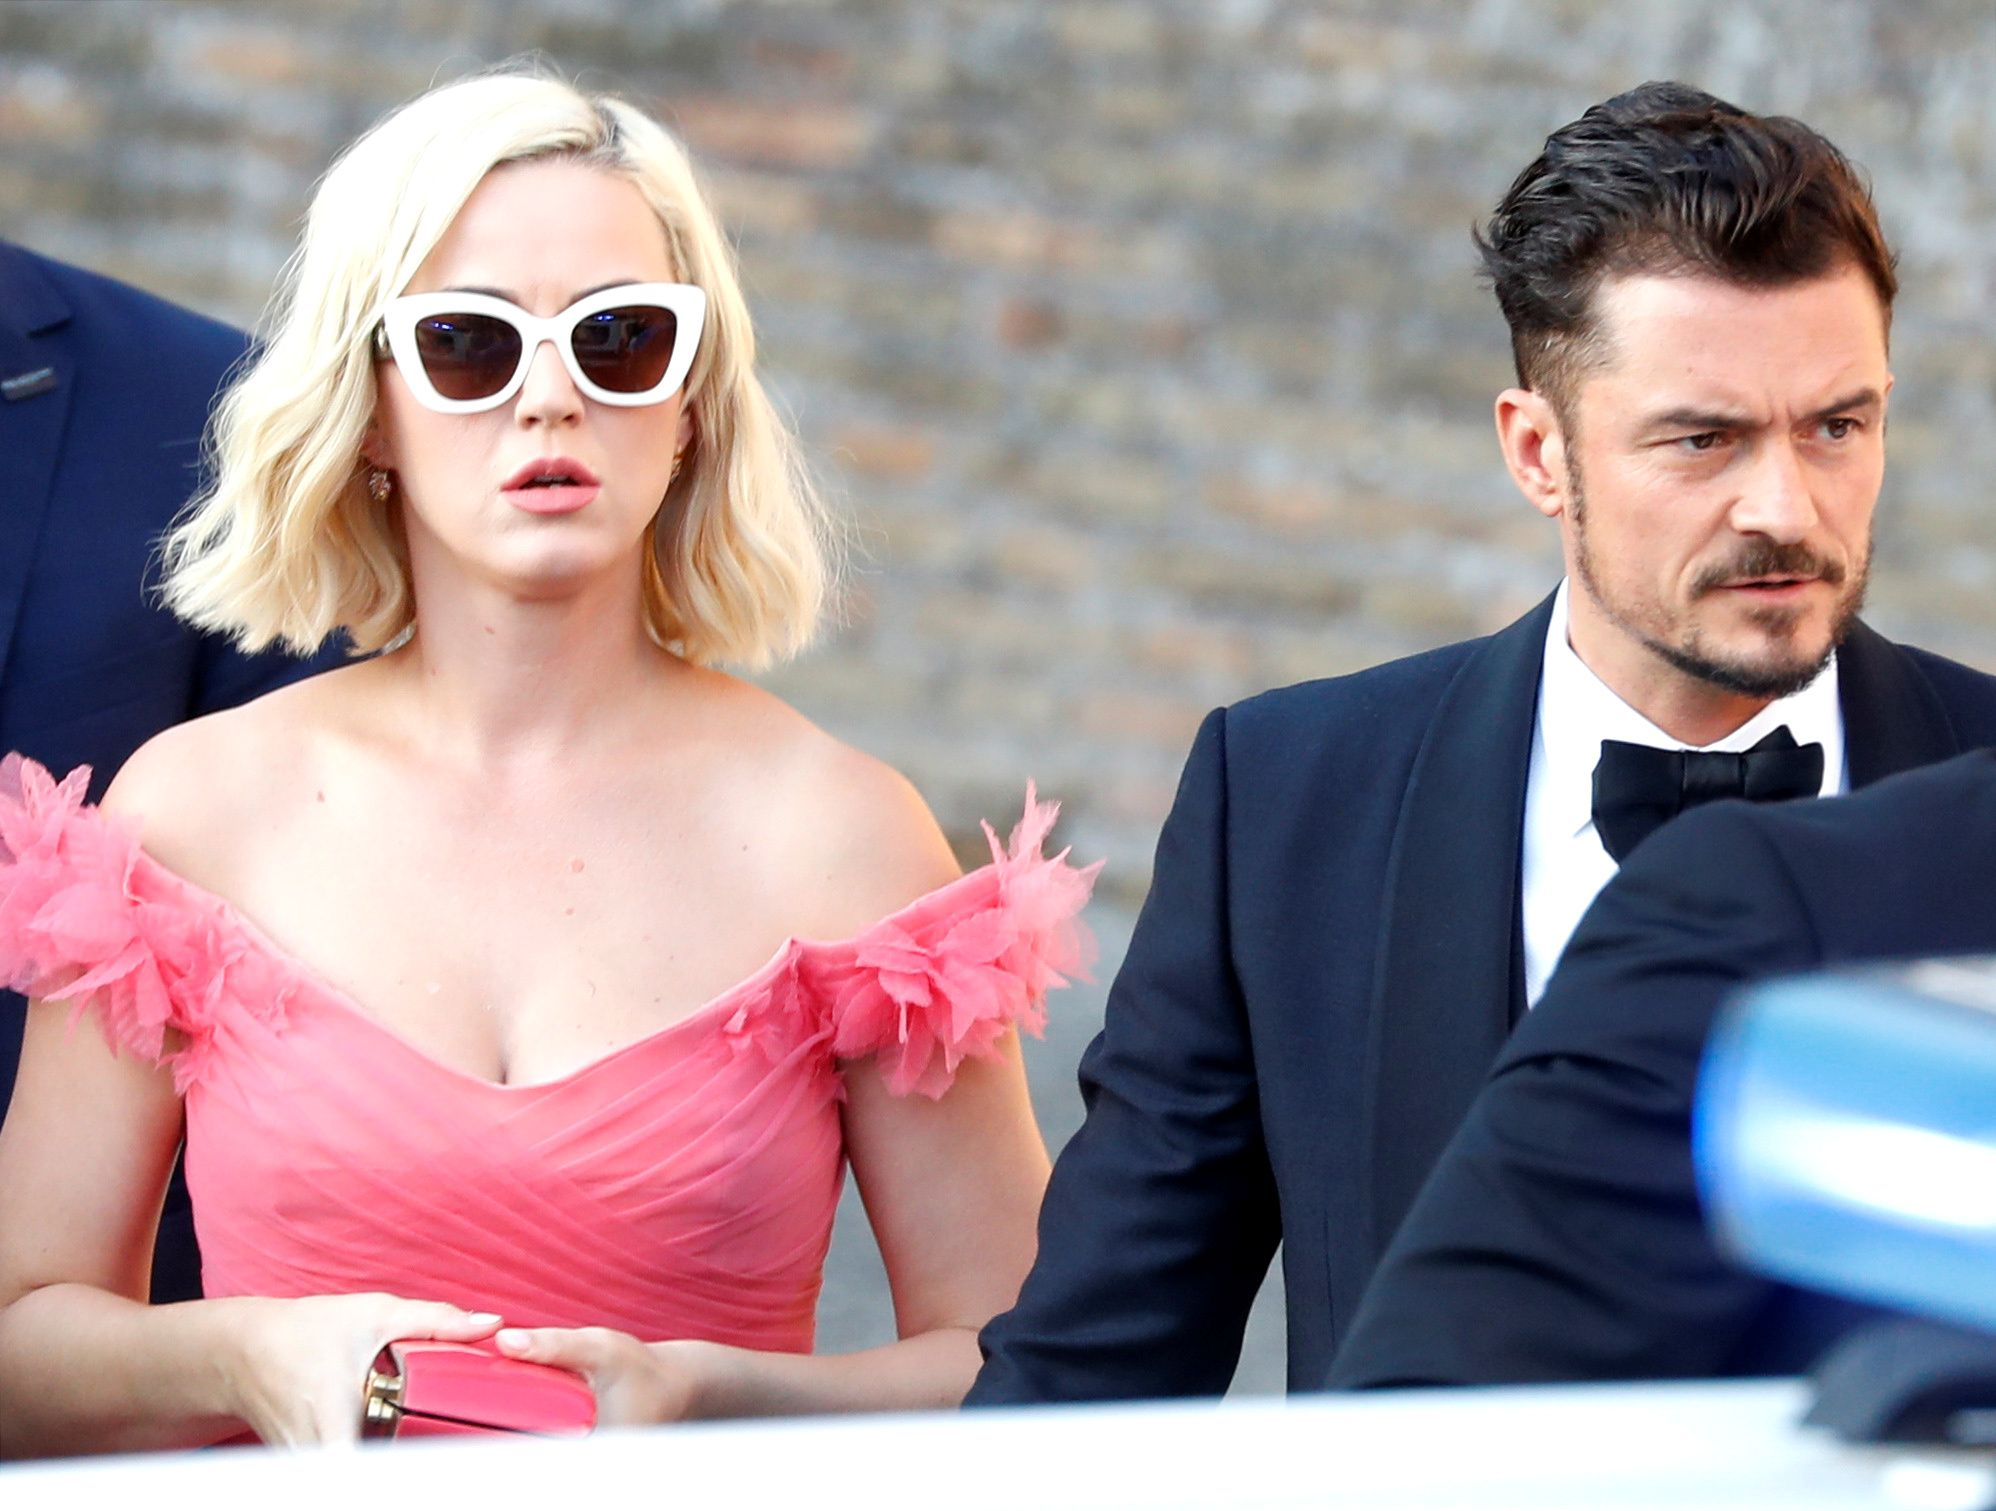 Katy Perry Channeled Barbie in a Pink Dress With Orlando Bloom at Misha Nonoo's Wedding